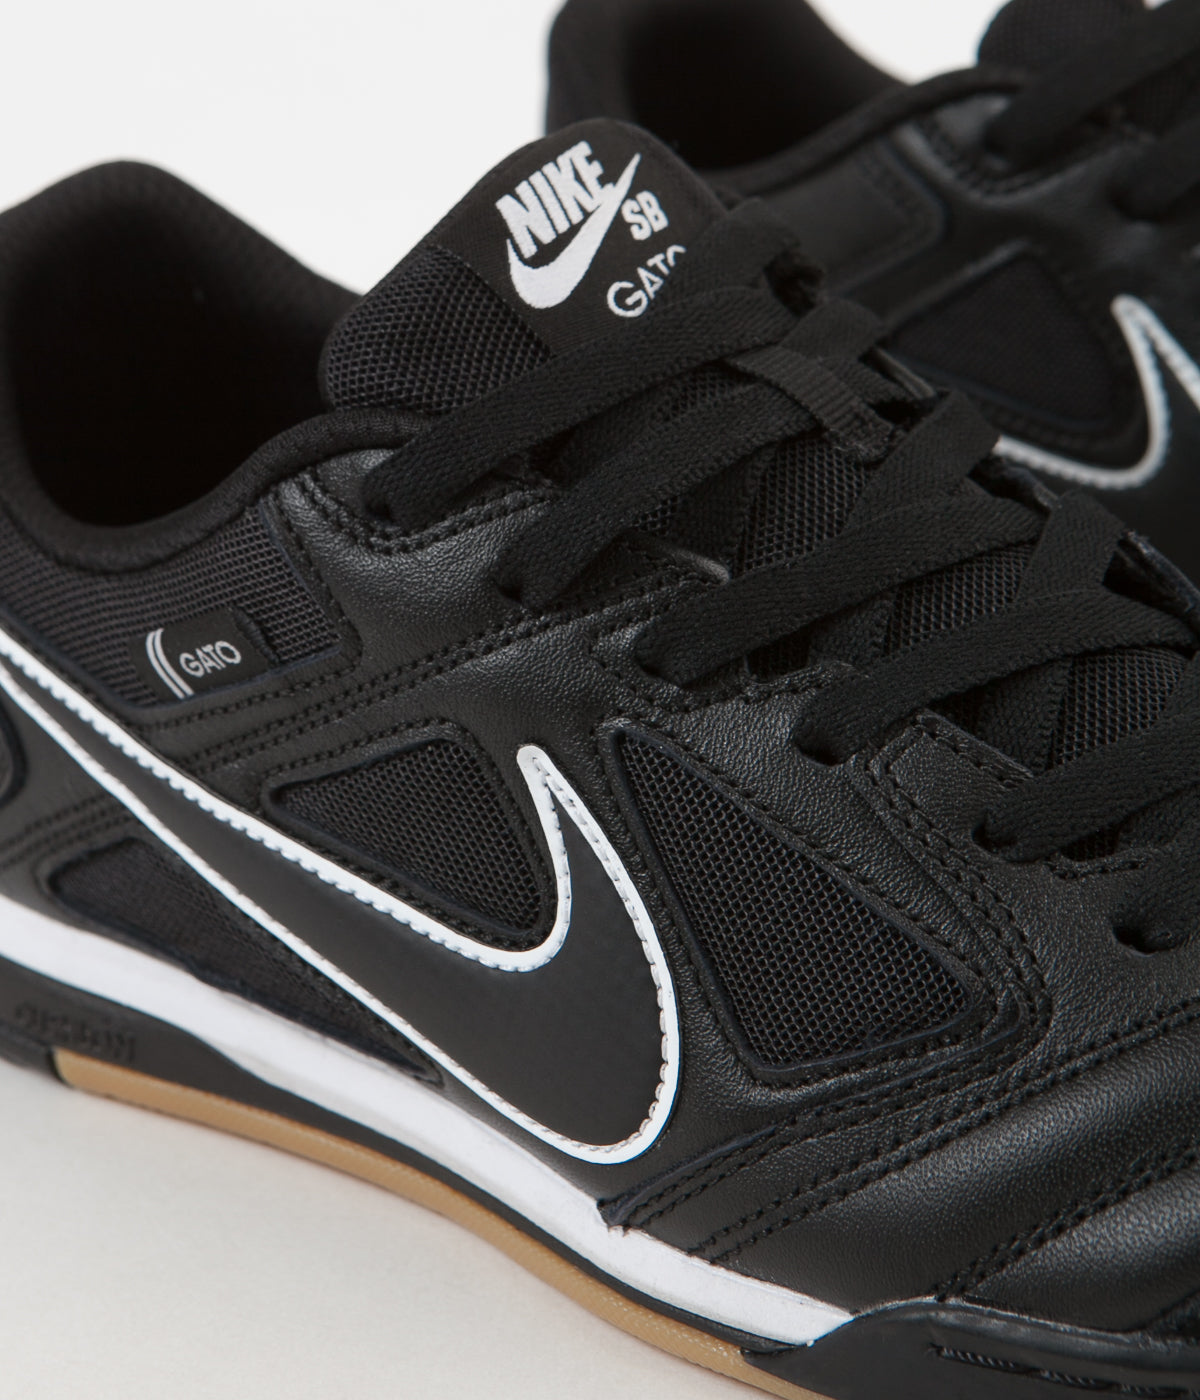 d95a2ab4eb5 ... Nike SB Gato Shoes - Black   Black - White - Gum Light Brown ...